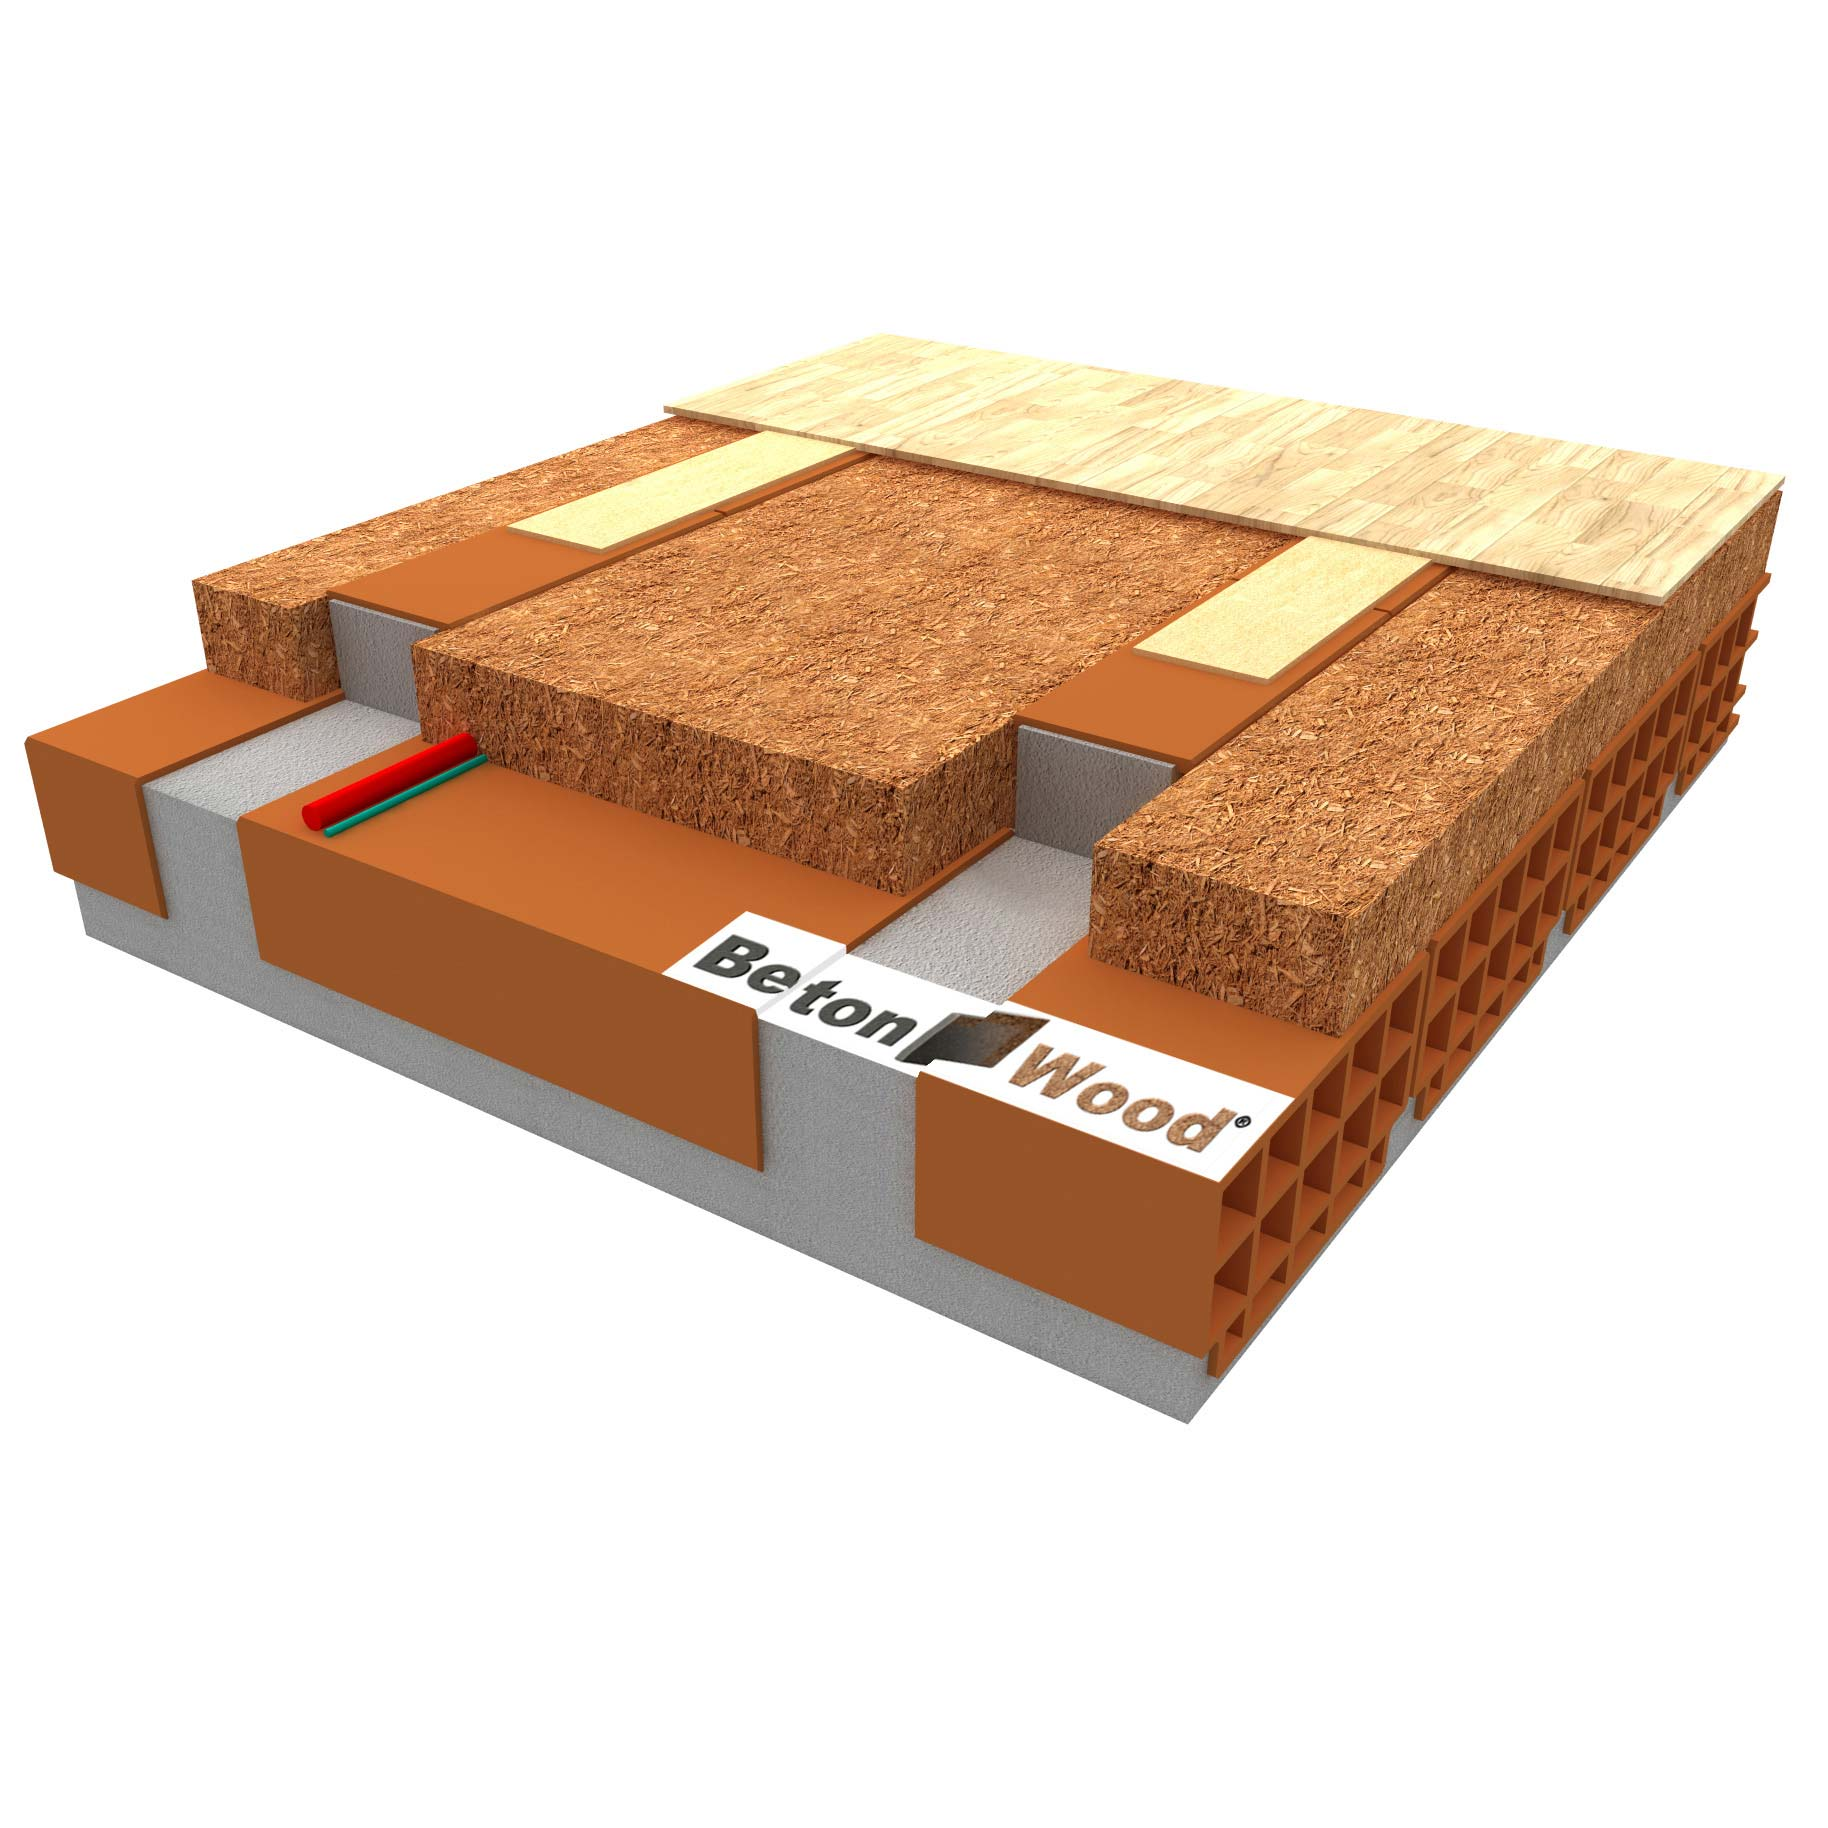 Dry screed with flexible fiber wood insulation